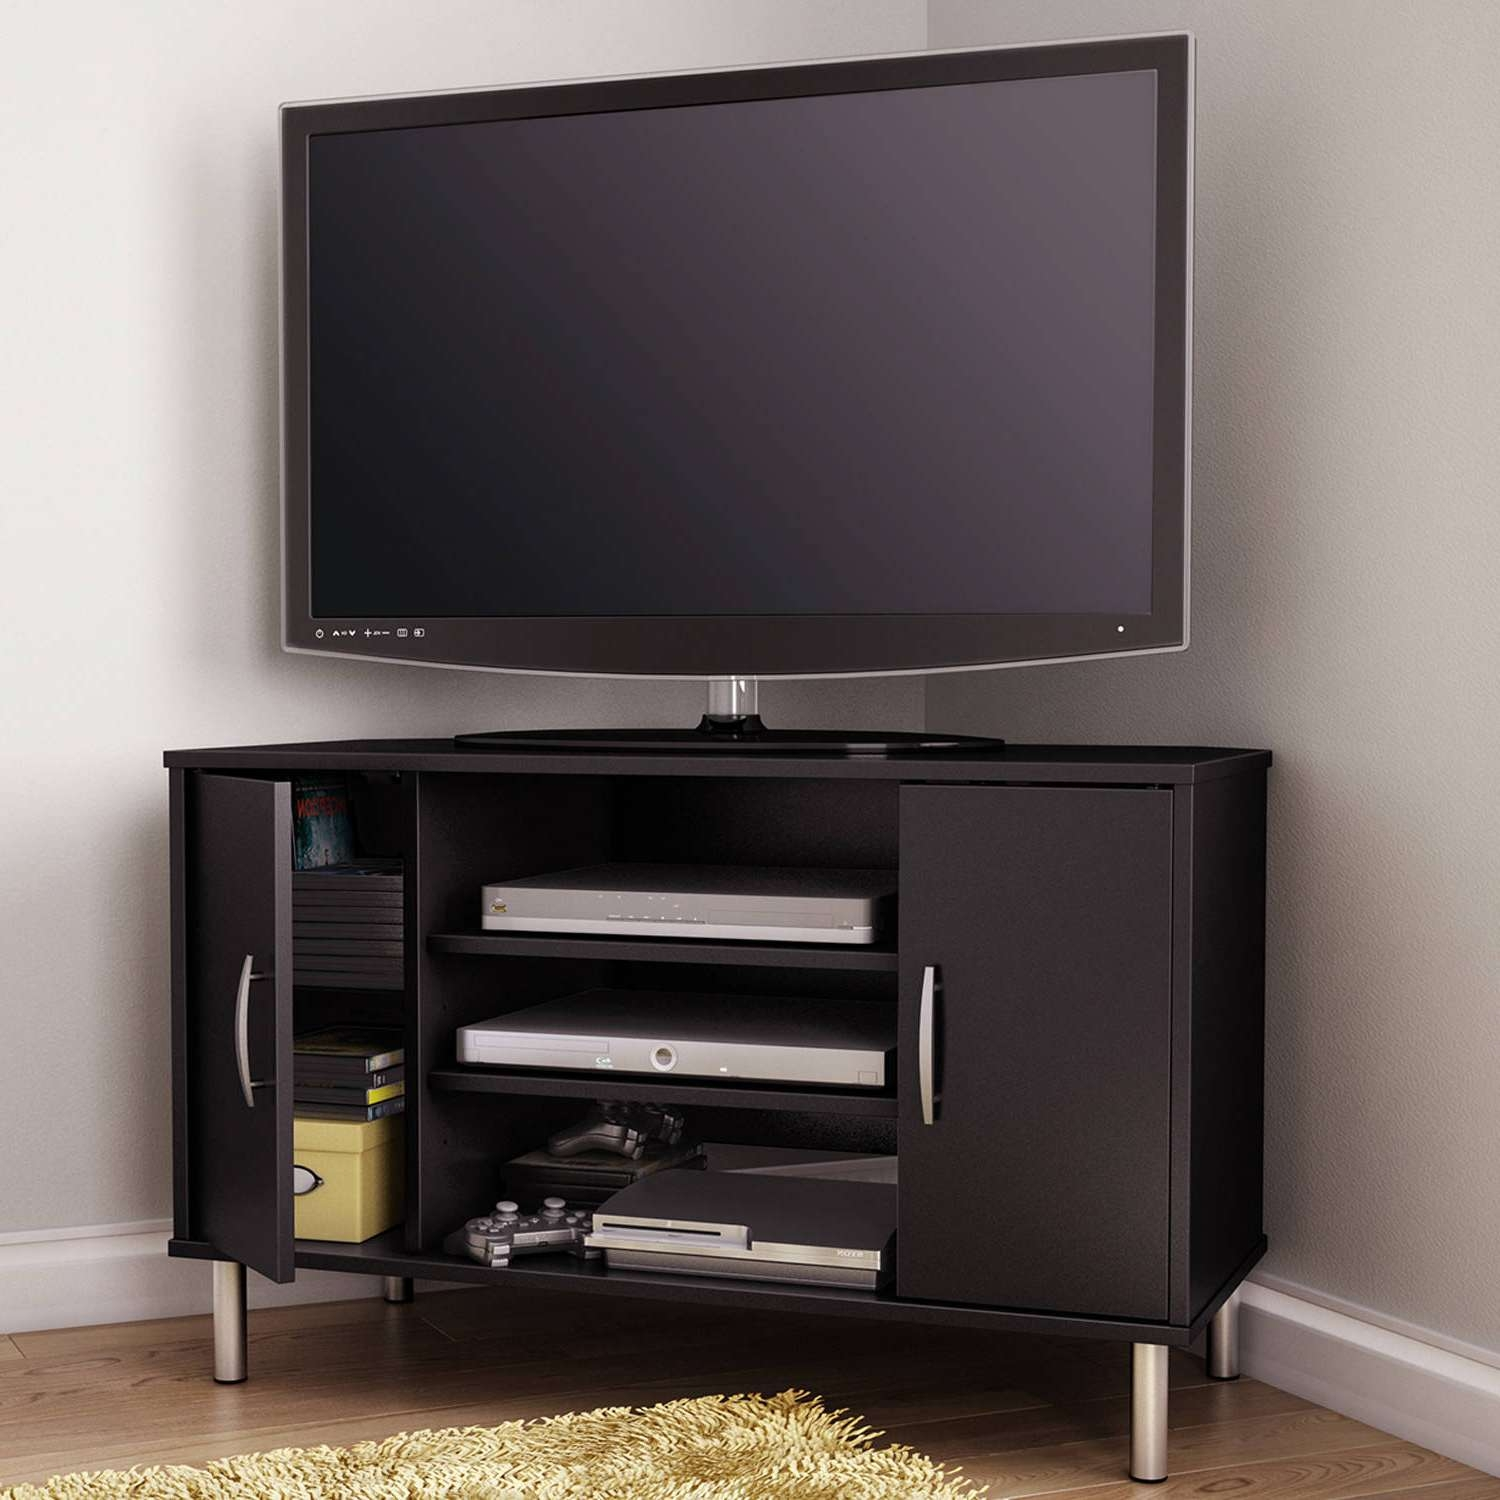 South Shore Renta Corner Tv Stand For Trends And Modern Picture Pertaining To Contemporary Corner Tv Stands (View 10 of 15)